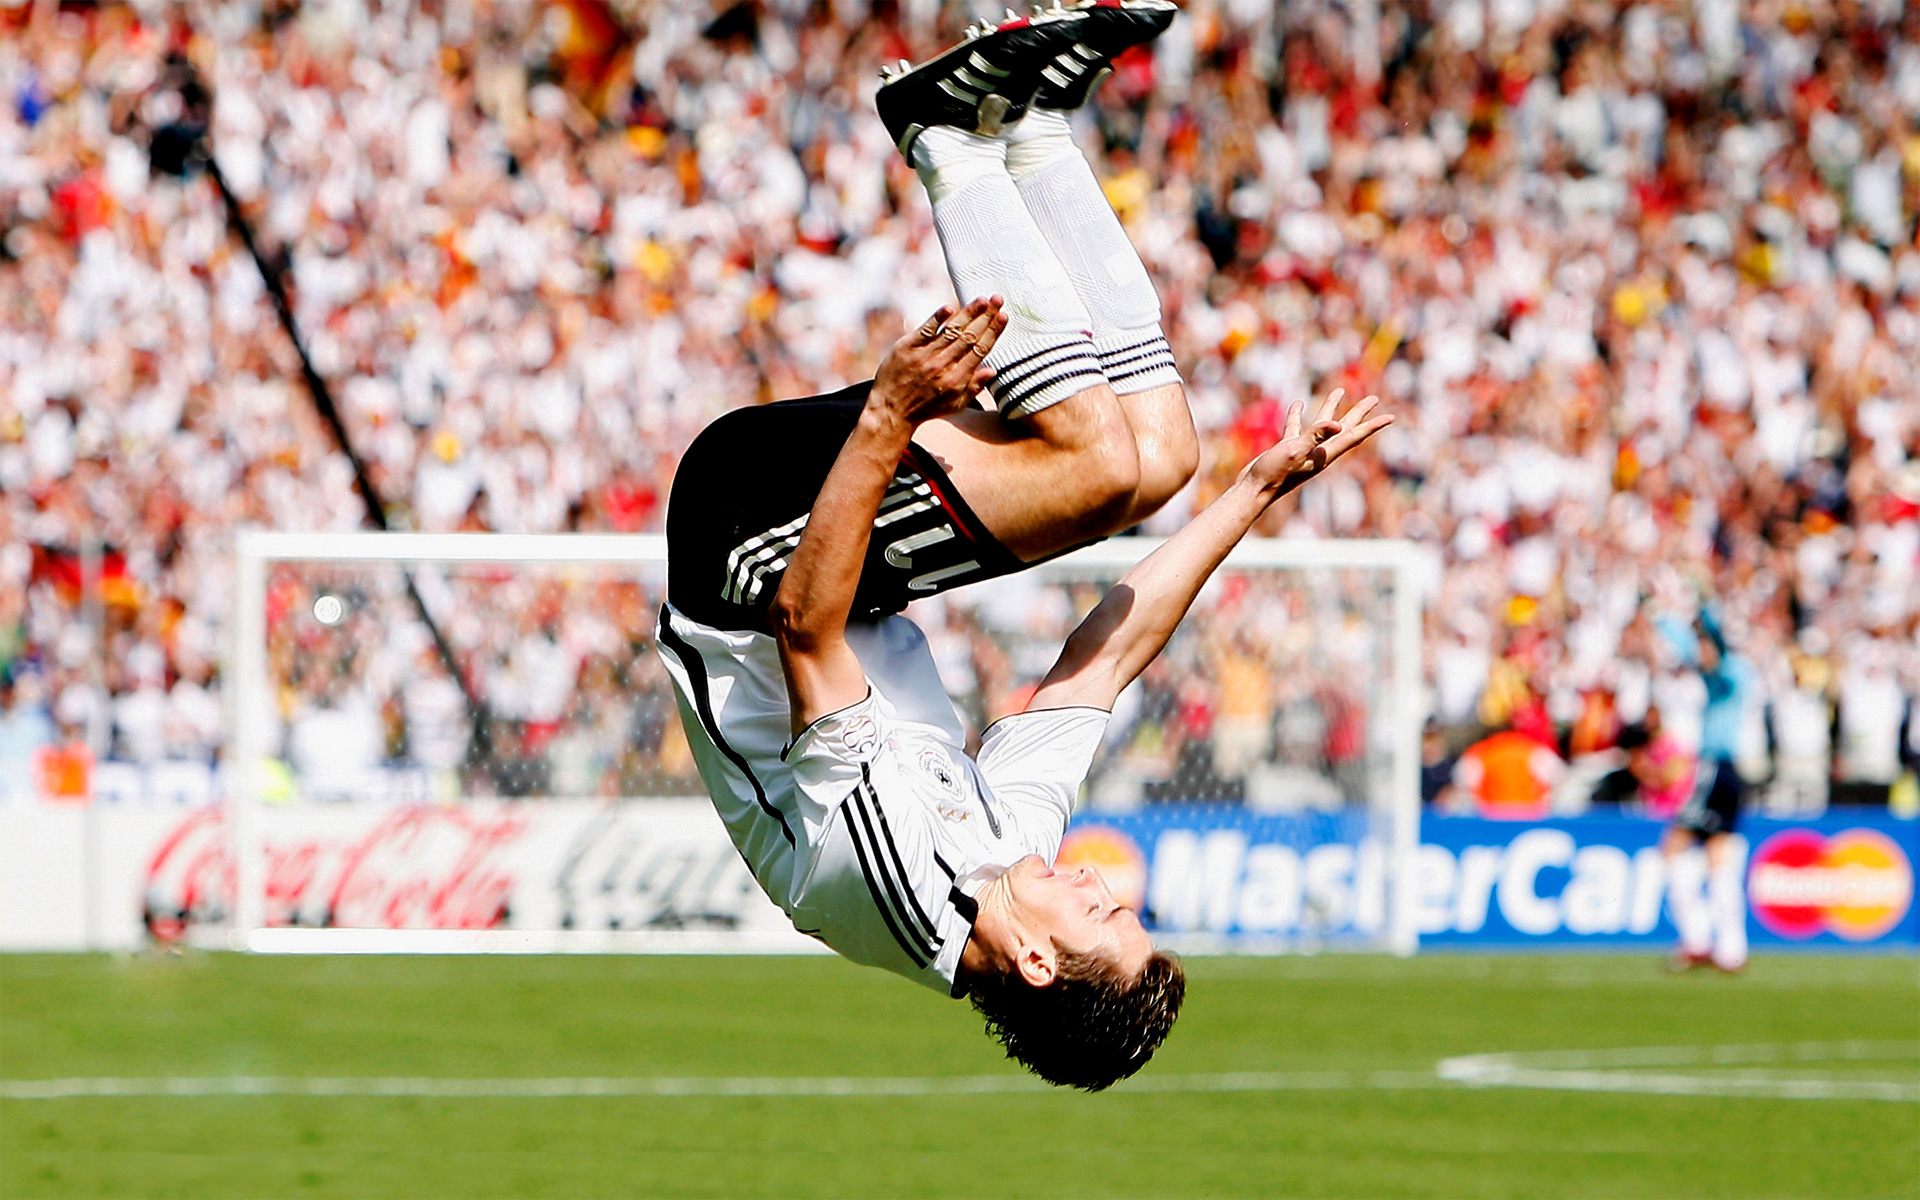 Sports - Miroslav Klose Wallpaper